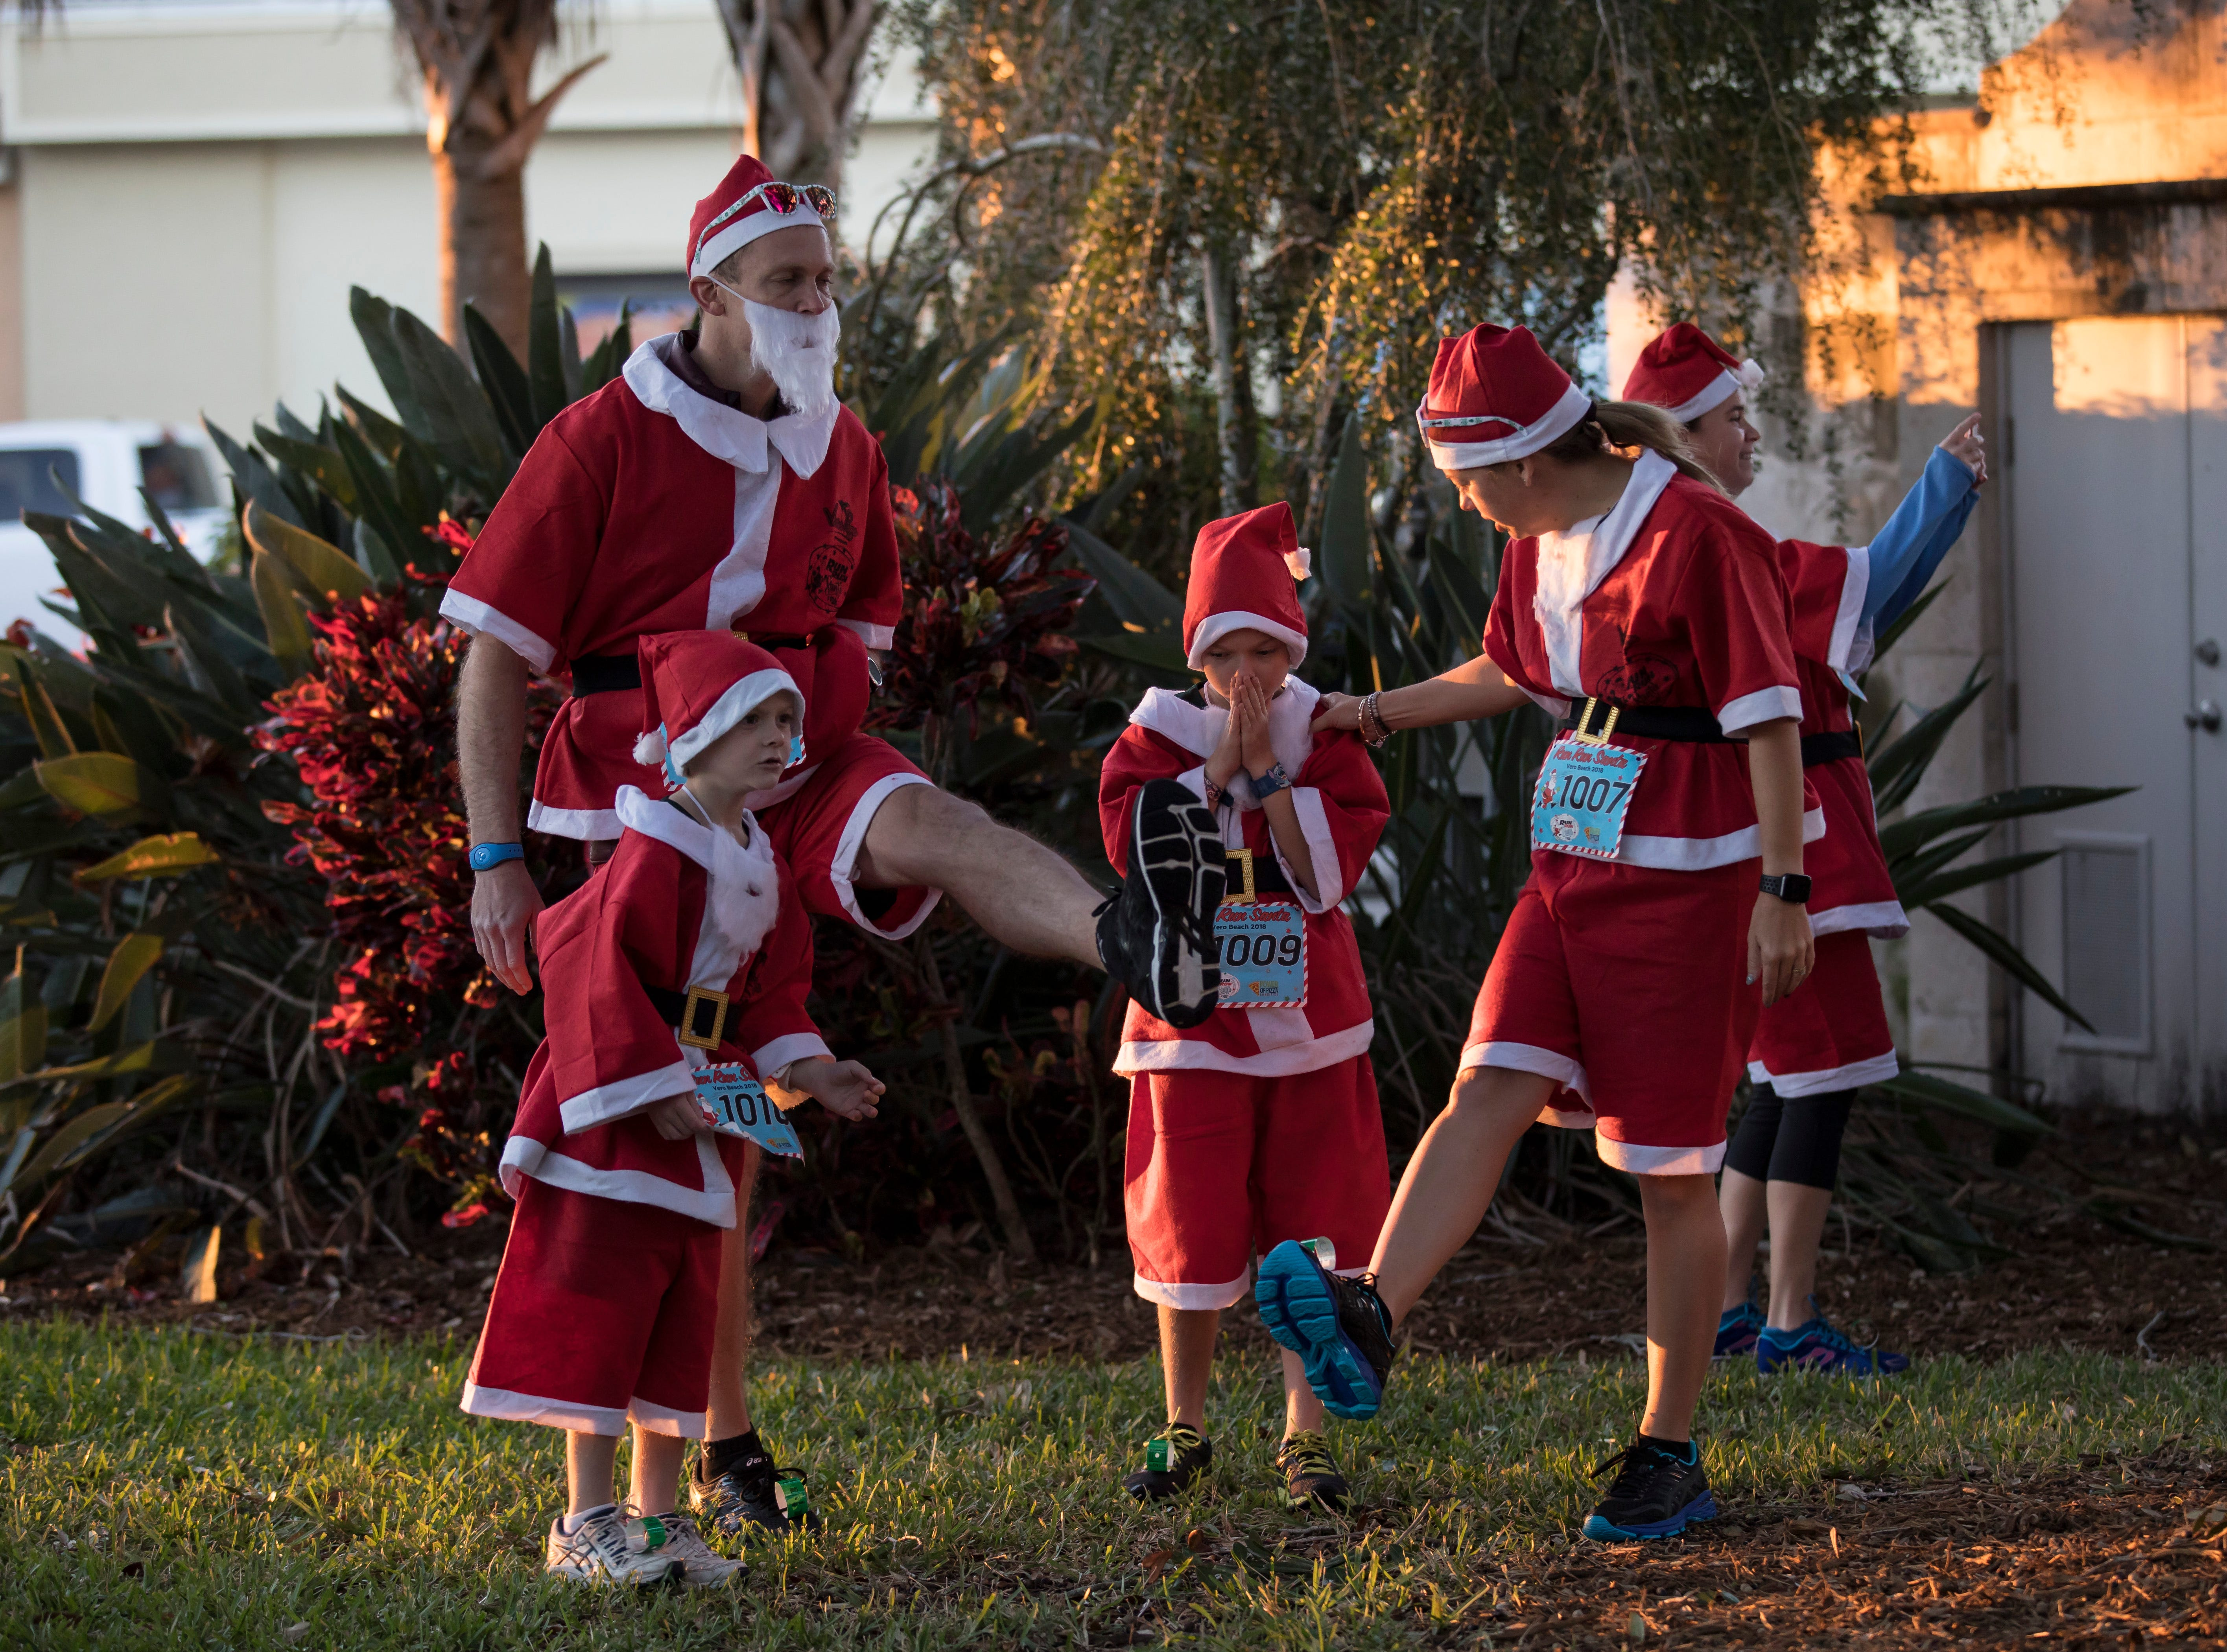 More than 600 racers competed in the Run Run Santa one-mile race Sunday, Dec. 23, 2018, through downtown Vero Beach.